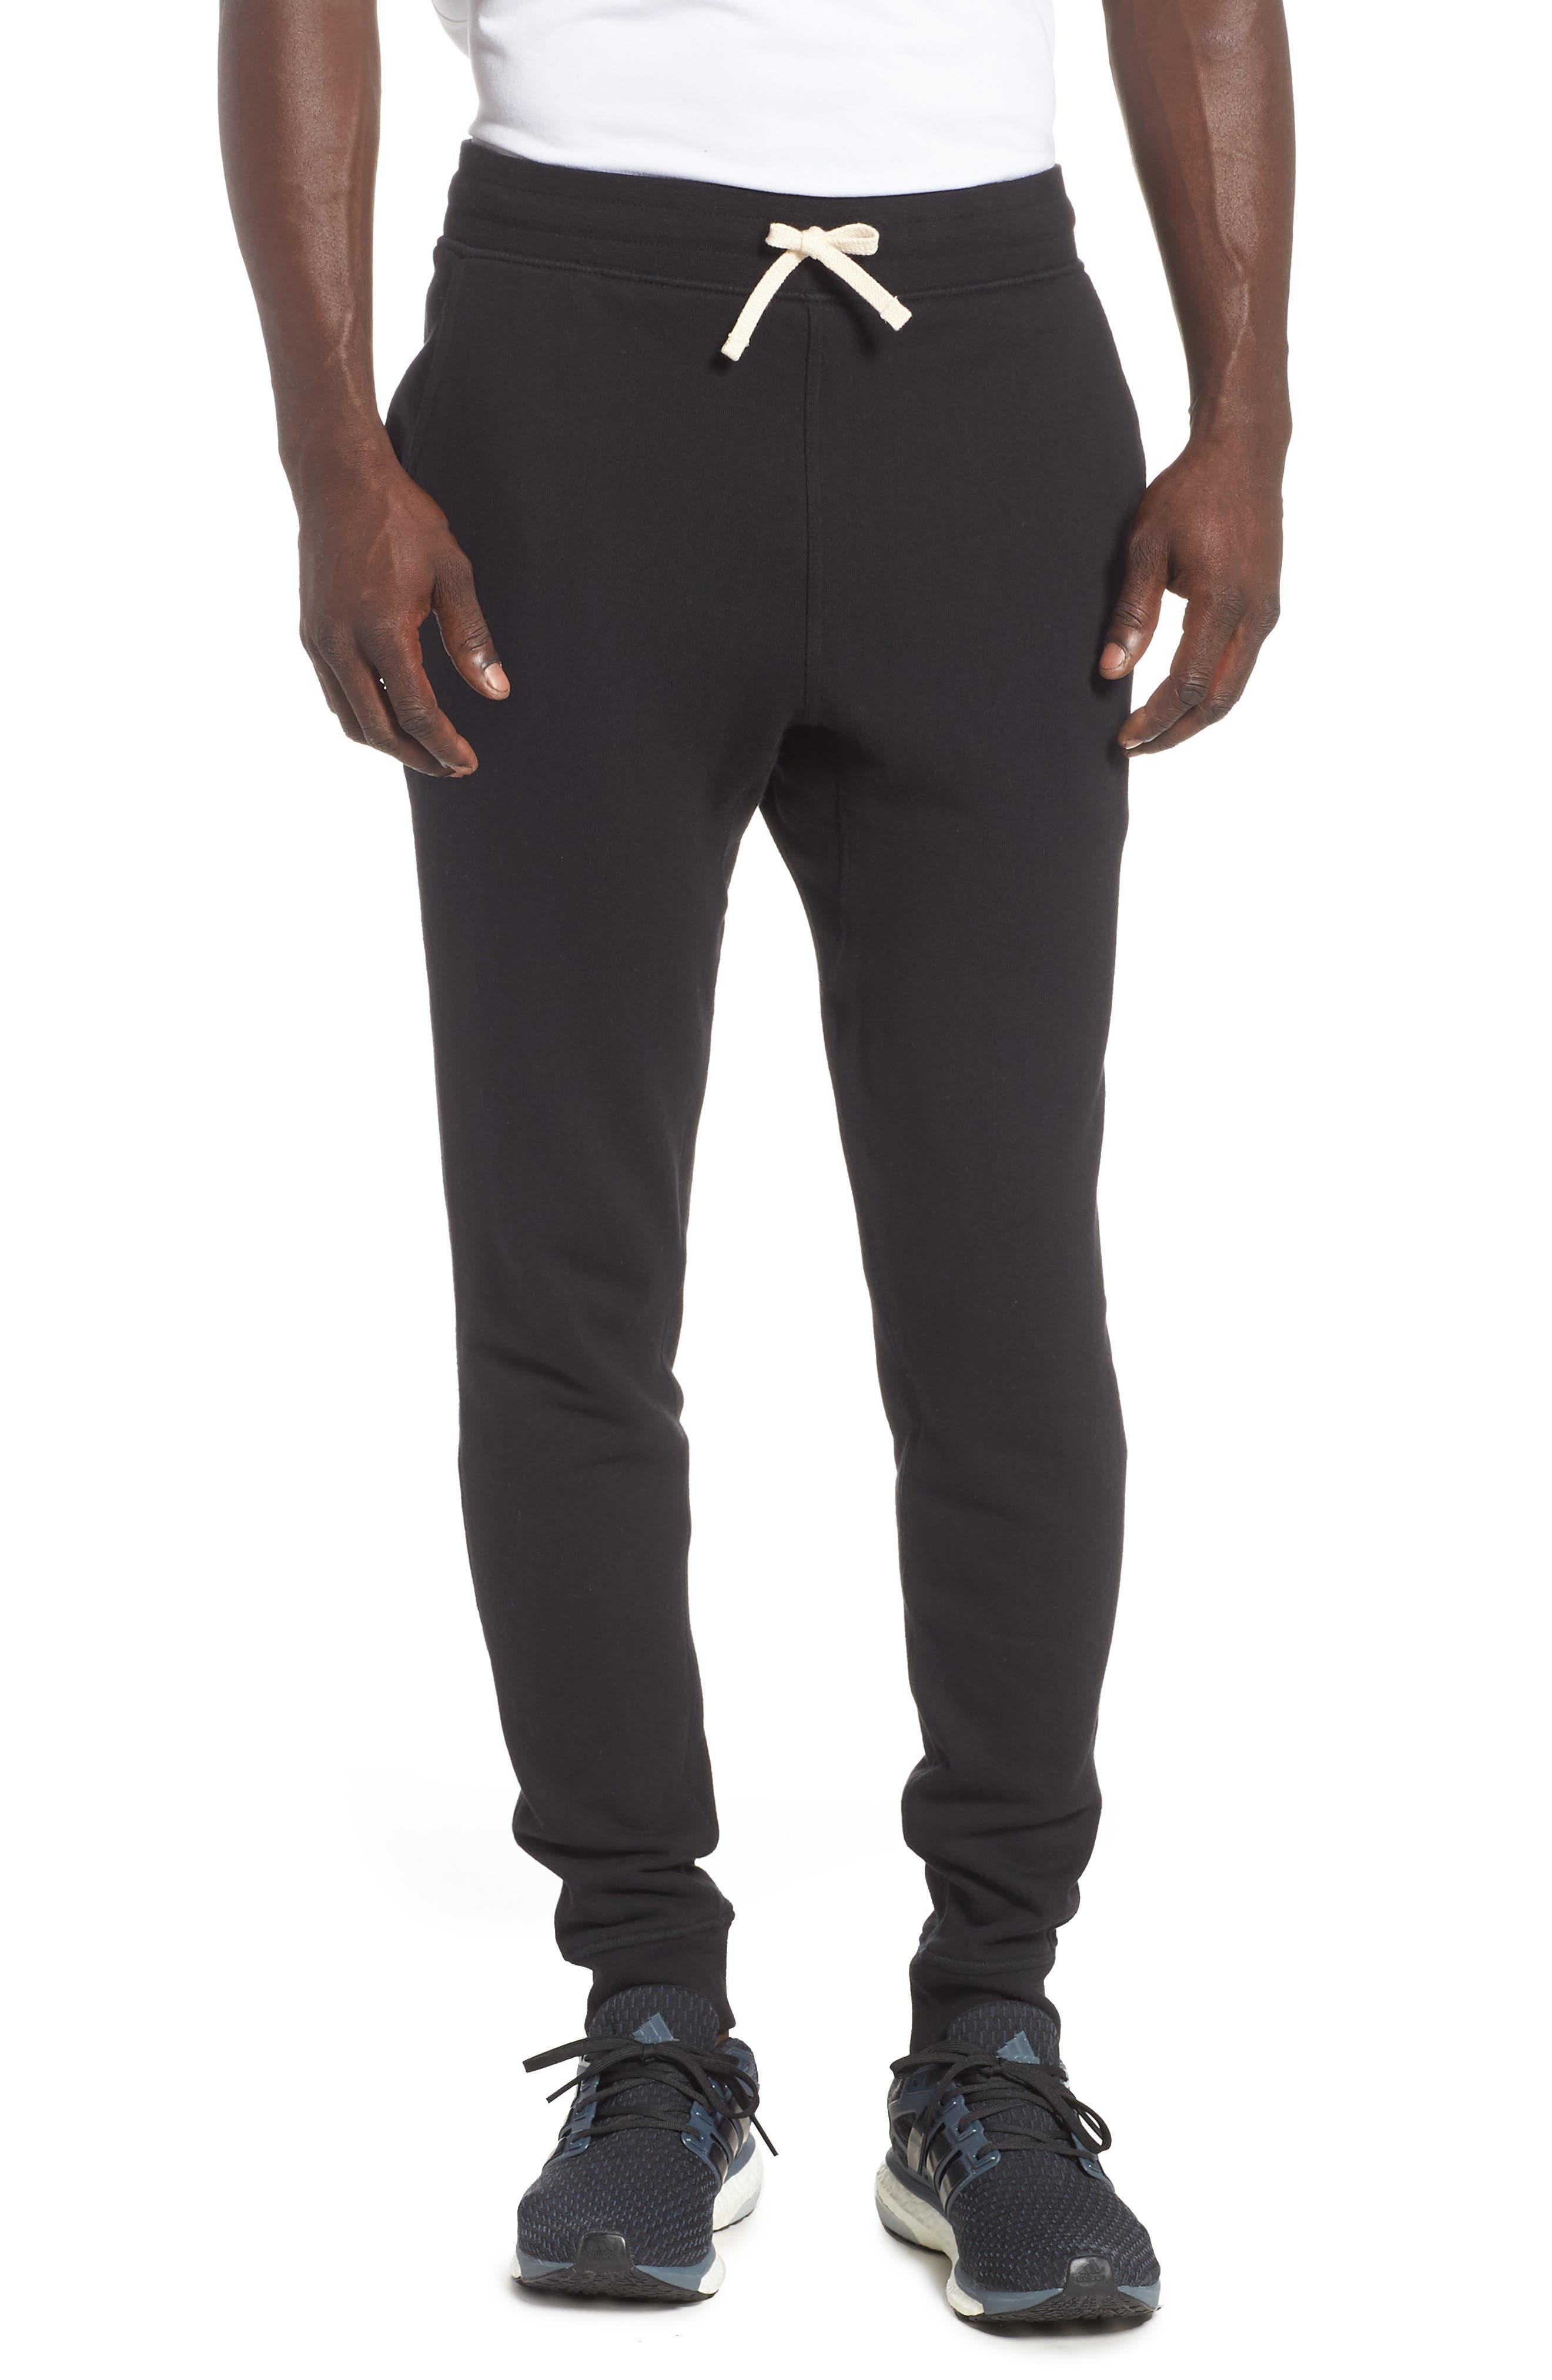 RICHER POORER Cotton Lounge Pants, Main, color, BLACK